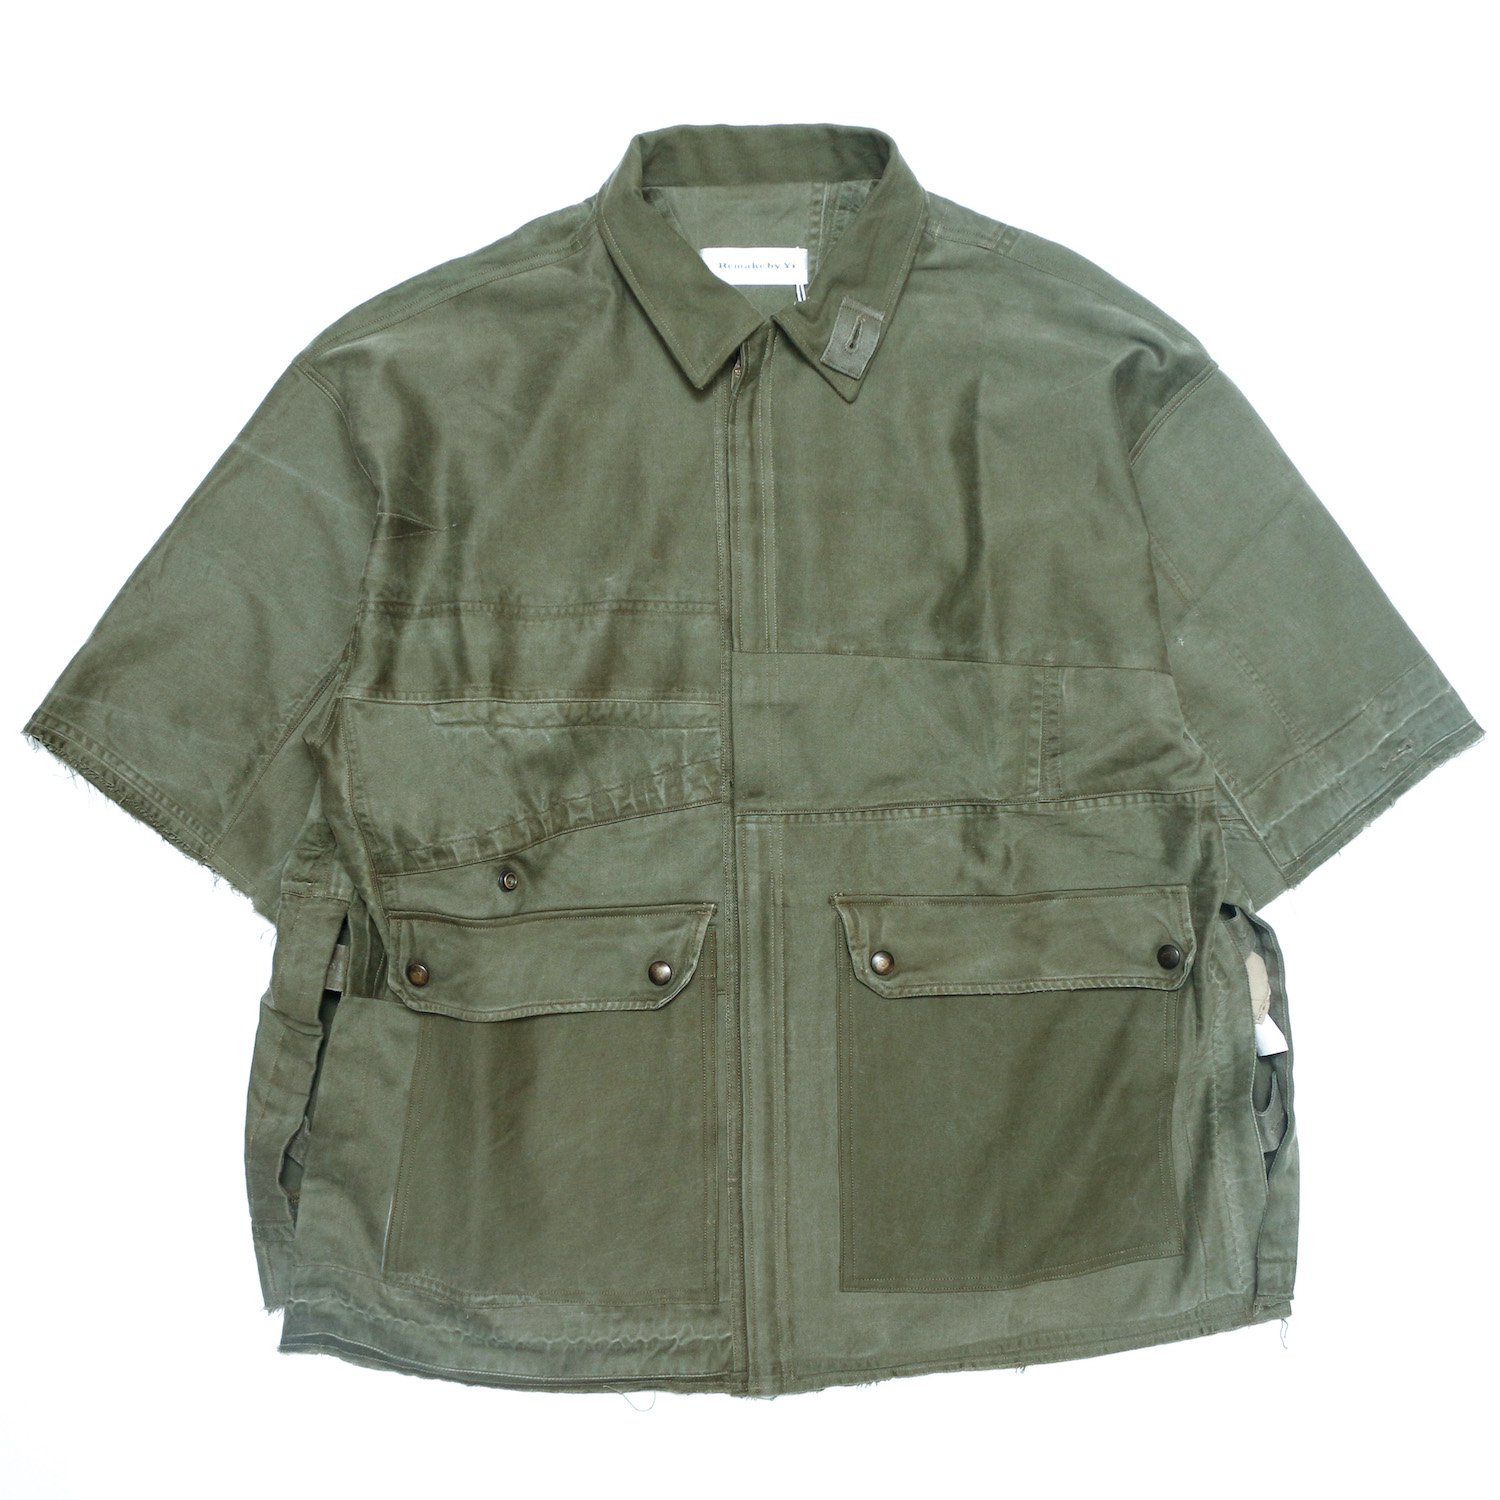 <img class='new_mark_img1' src='https://img.shop-pro.jp/img/new/icons8.gif' style='border:none;display:inline;margin:0px;padding:0px;width:auto;' />Remake by Yi / Remake Shortsleeve Shirts (French Army M-64 Field Parka - 1965s)